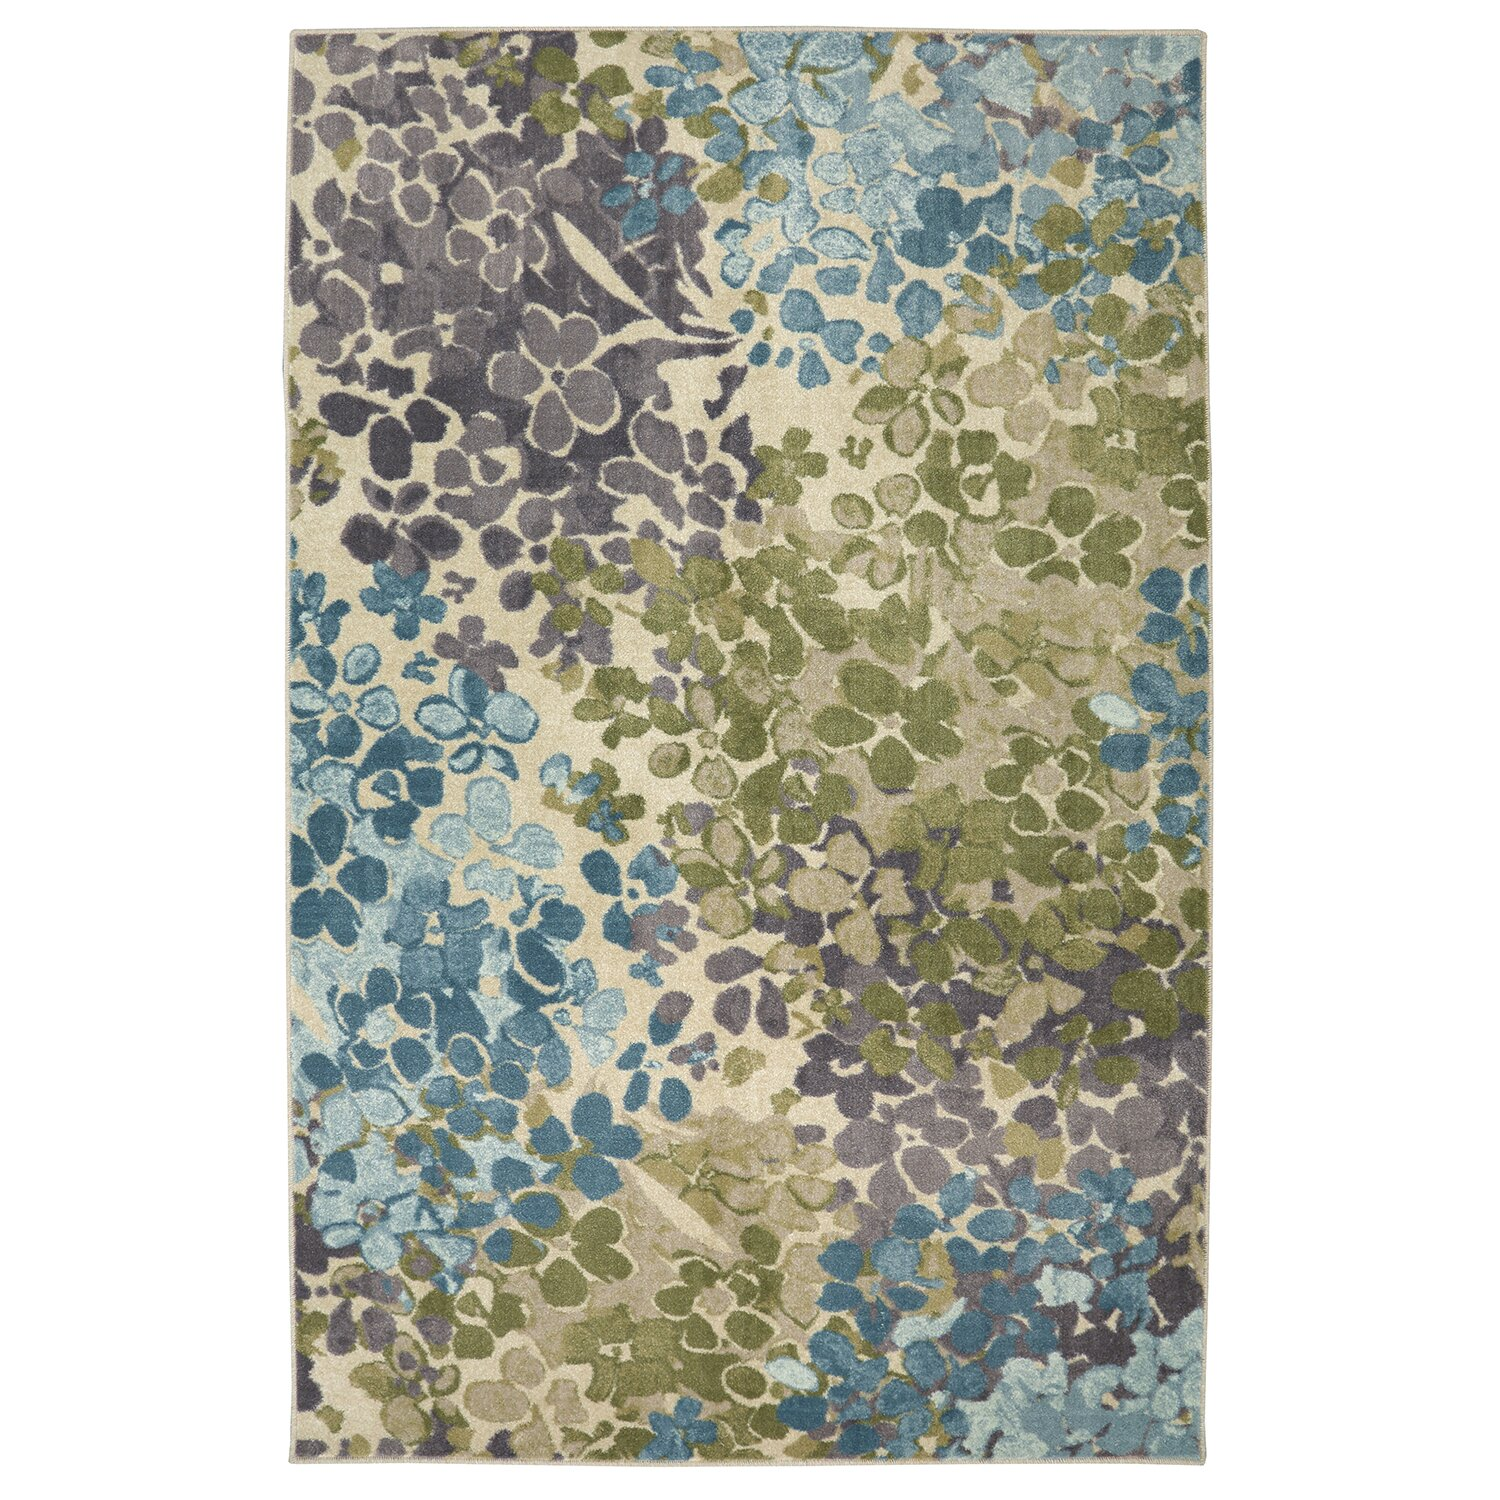 Red barrel studio adams aqua area rug reviews wayfair for Where can i buy area rugs